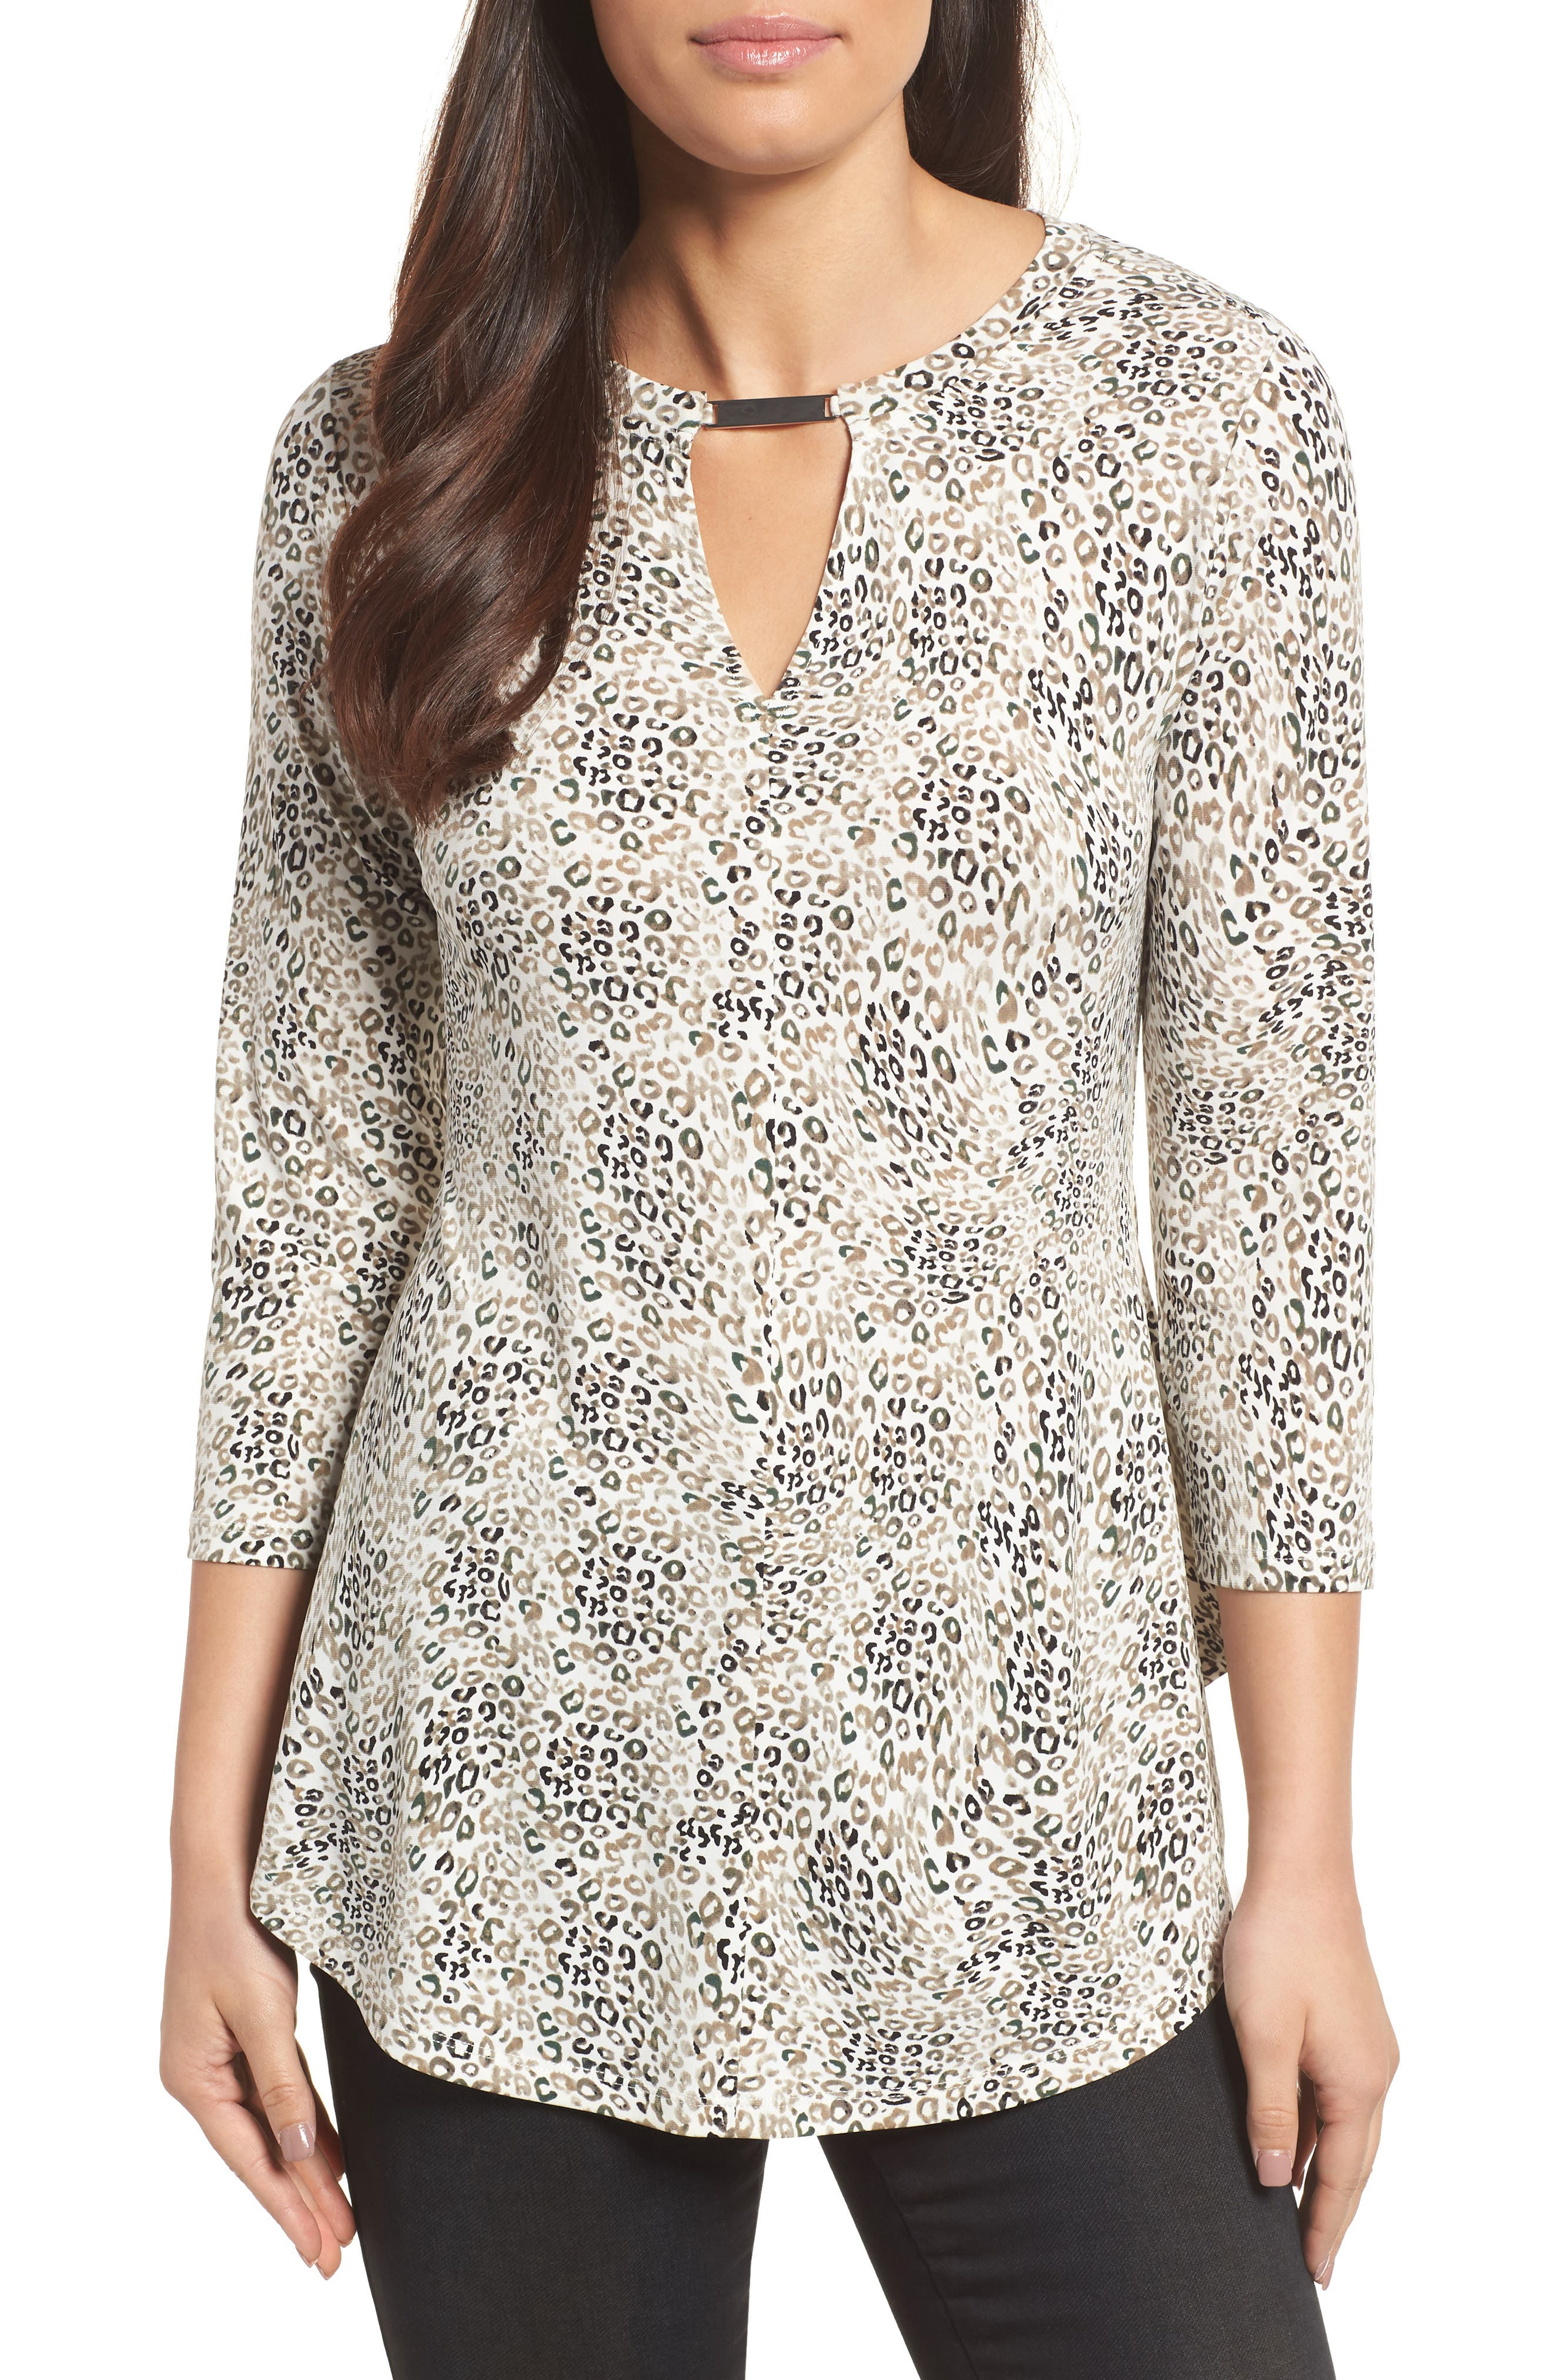 Leopard Keyhole Top,                         Main,                         color, 103-New Ivory